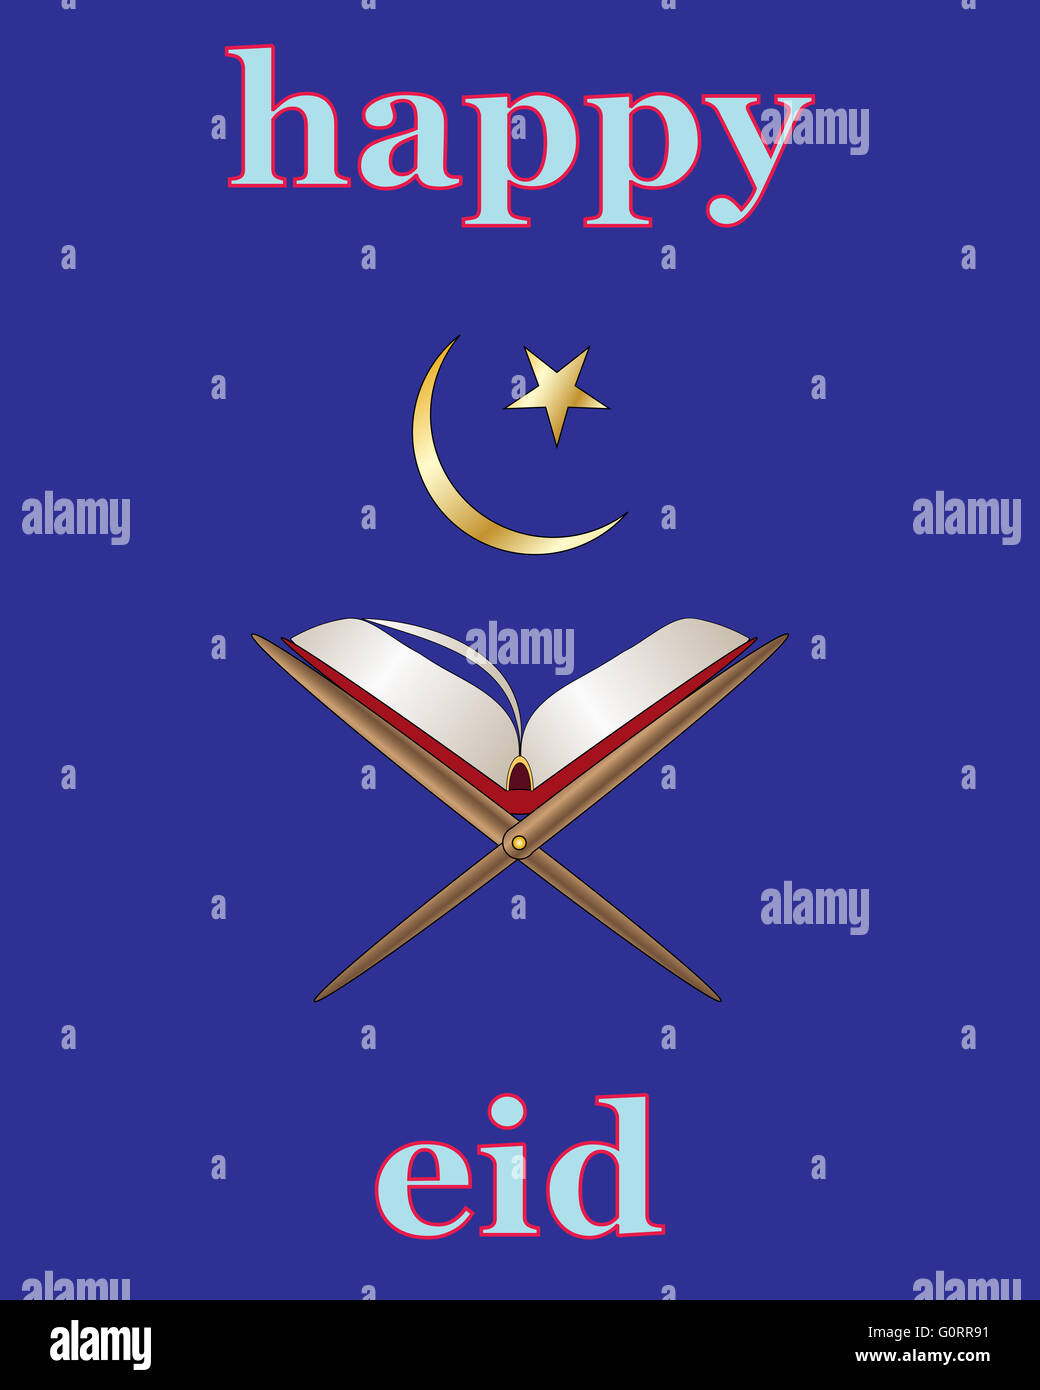 an illustration of an Islamic greeting card for the festival of Eid with Koran and star and crescent moon on a blue - Stock Image